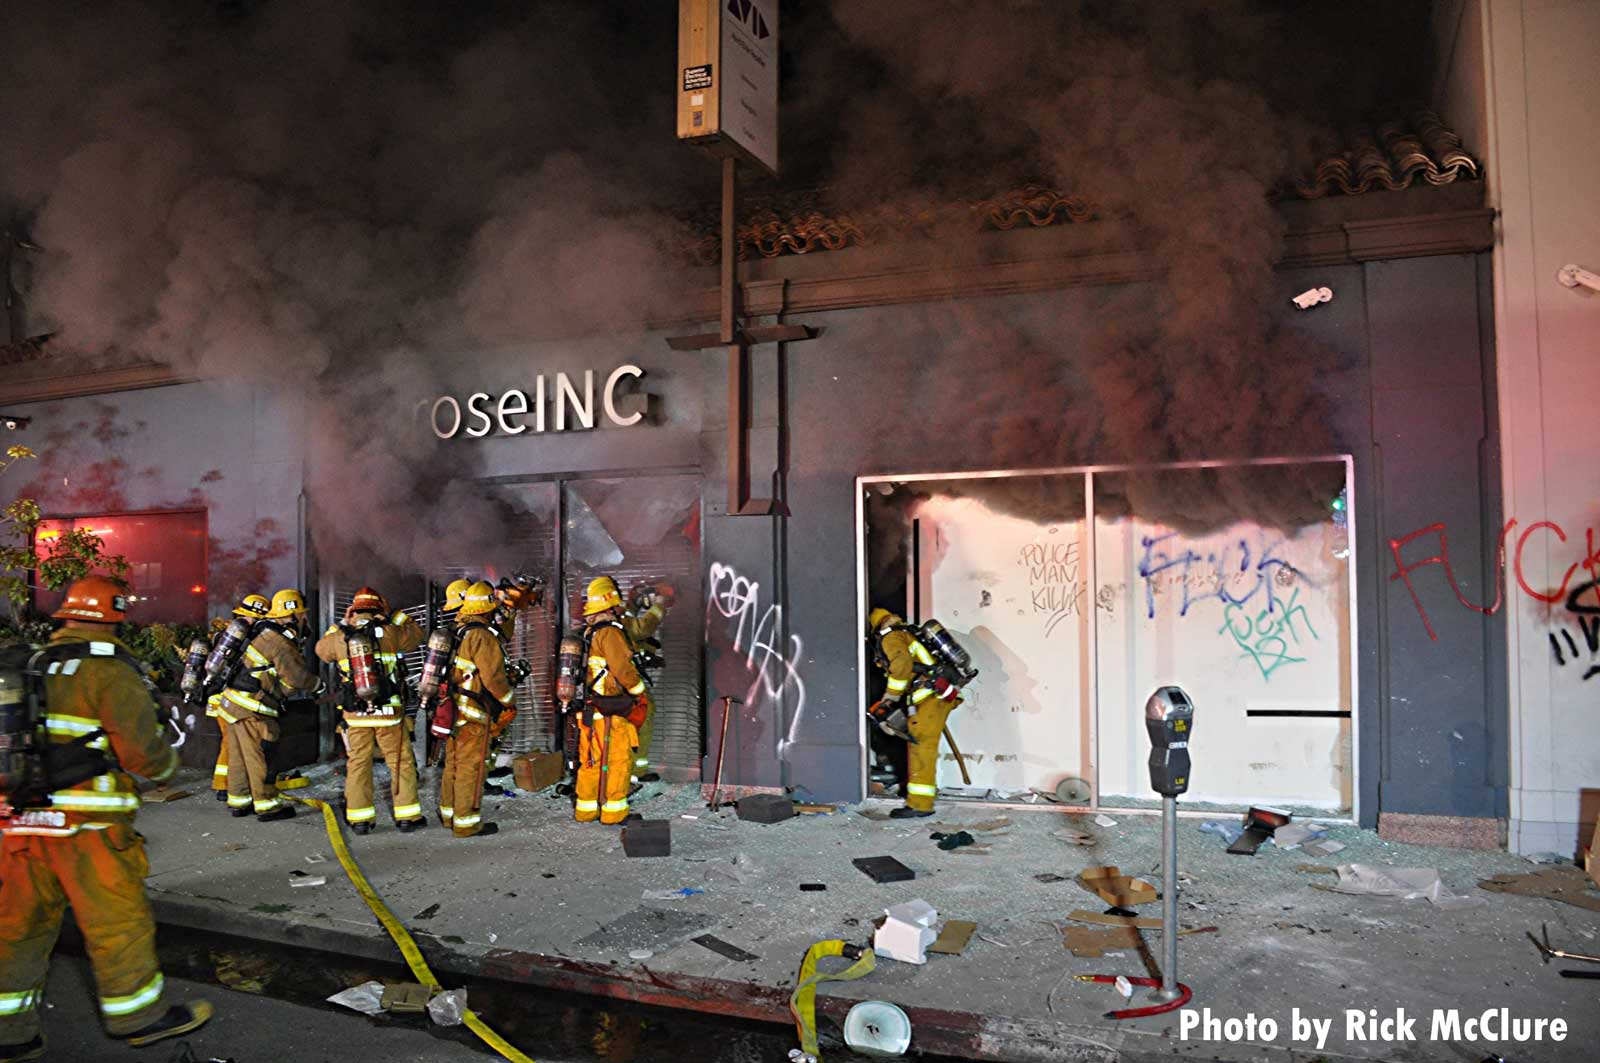 Los Angeles firefighters operate amid smoke